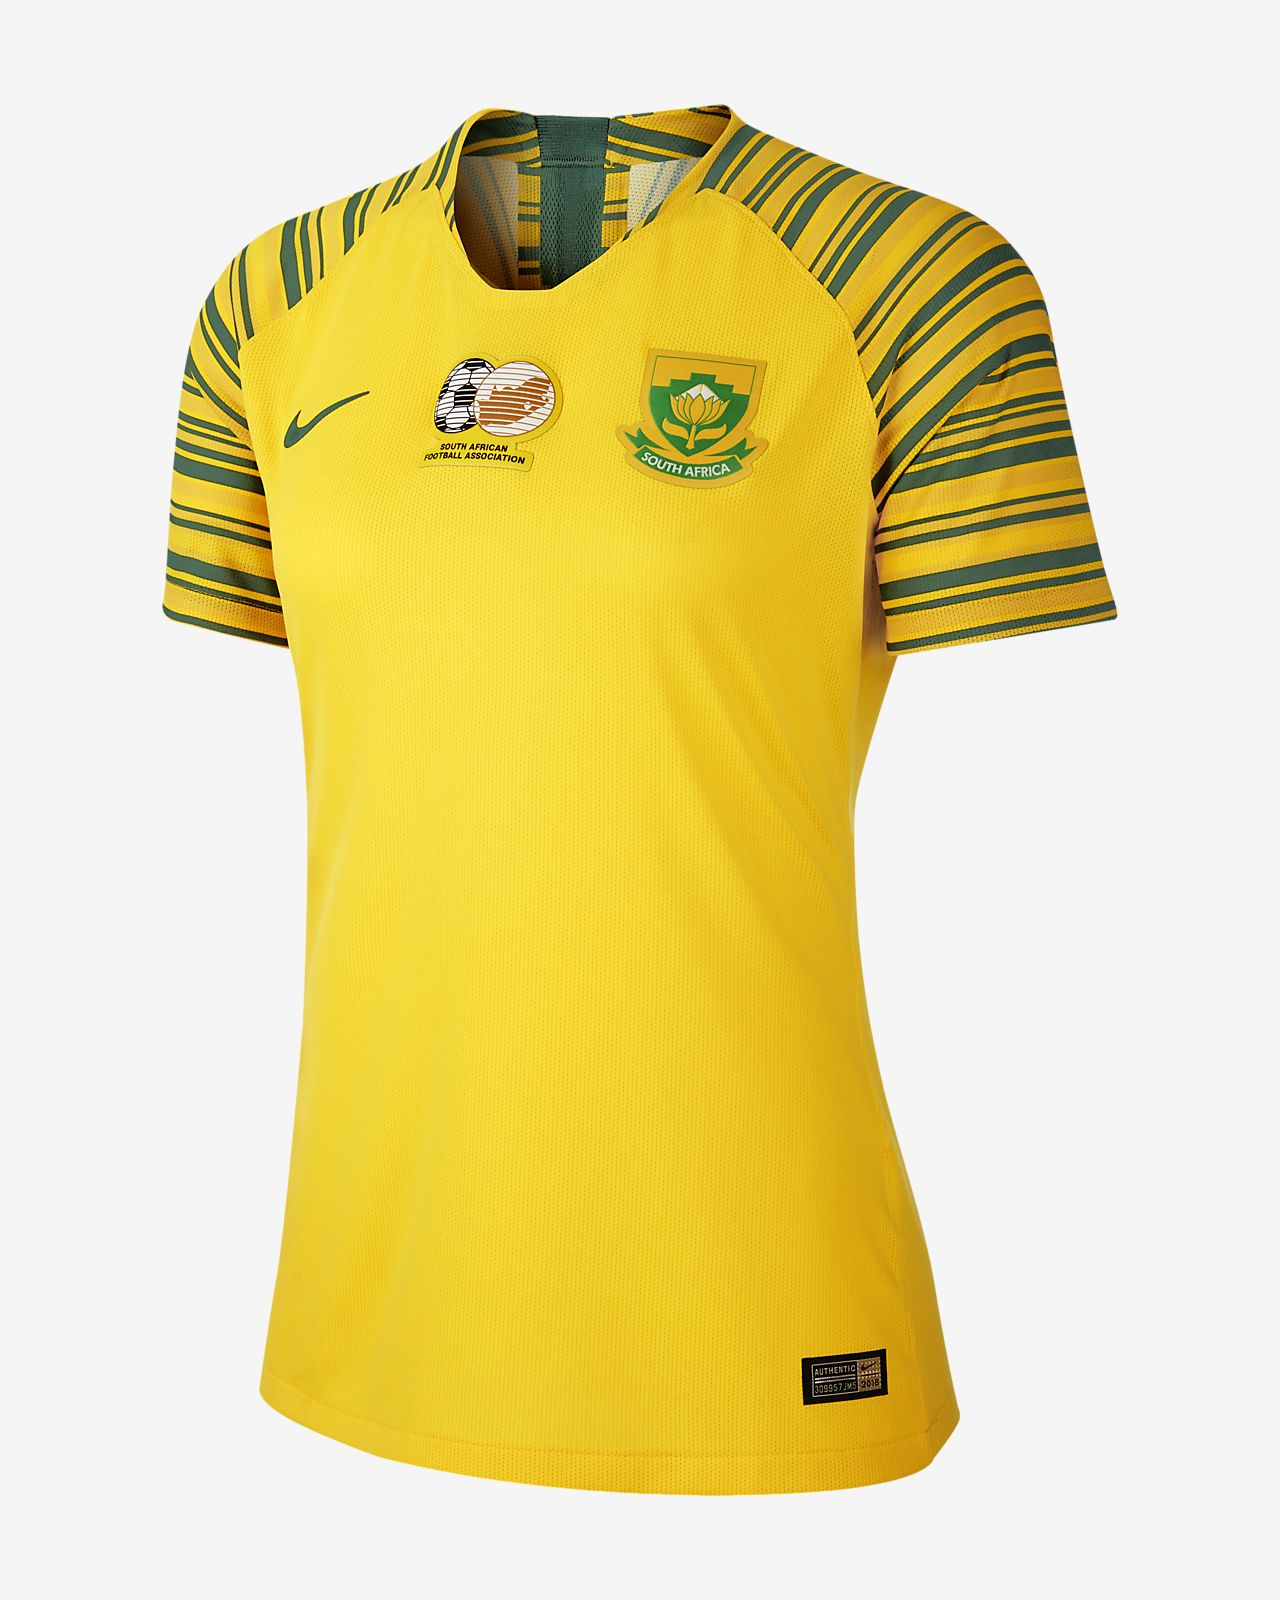 Maillot de football South Africa 2019 Home pour Femme